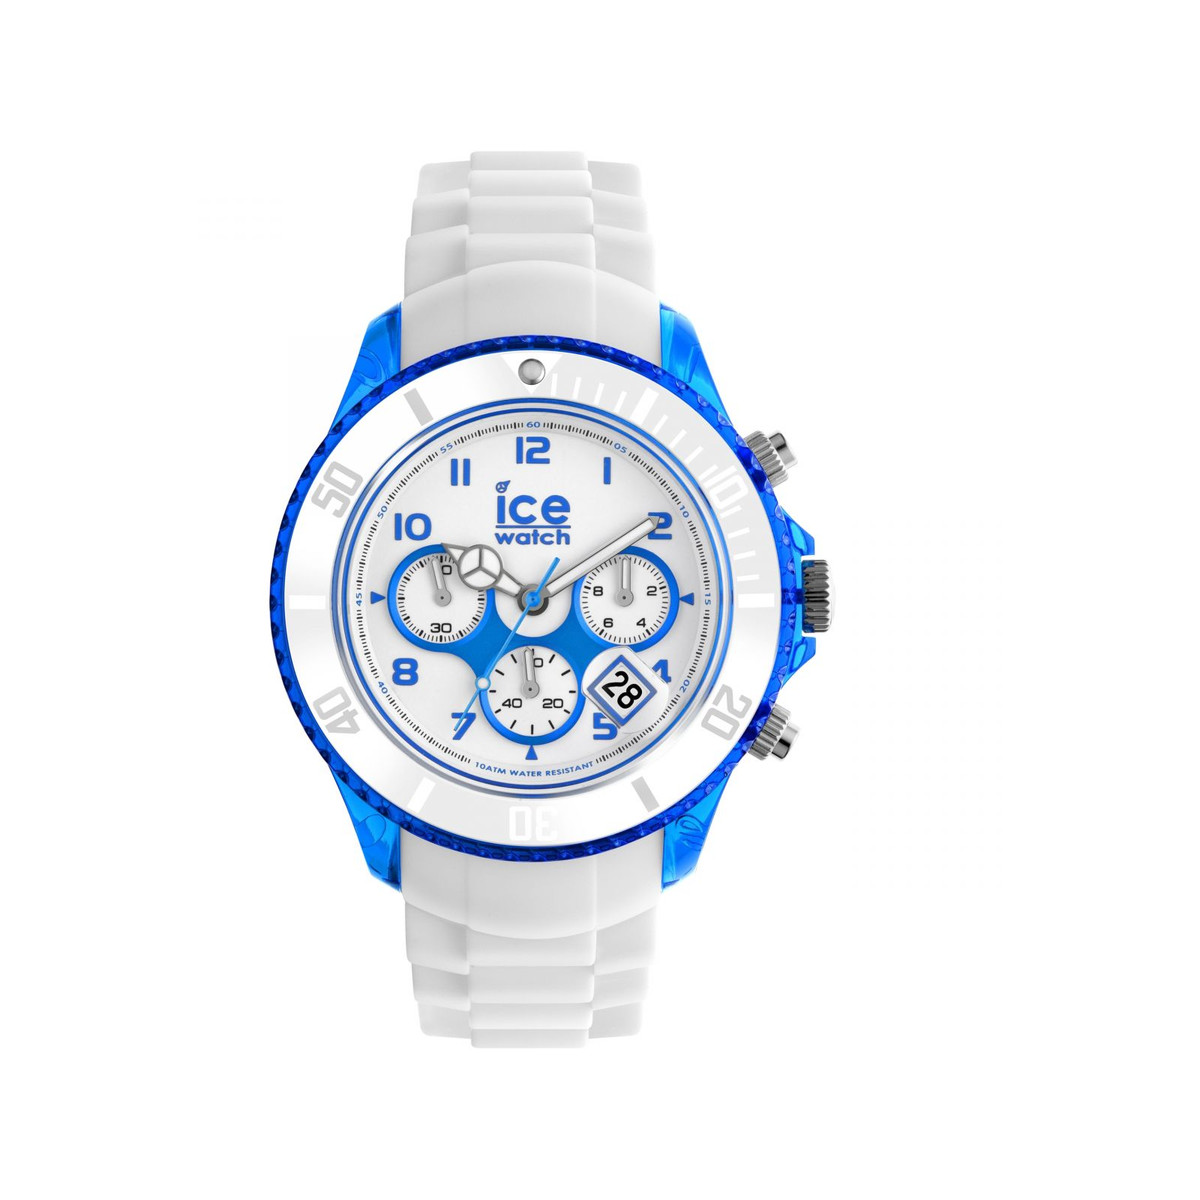 montre Ice Watch mixte chronographe silicone blanc - vue 1